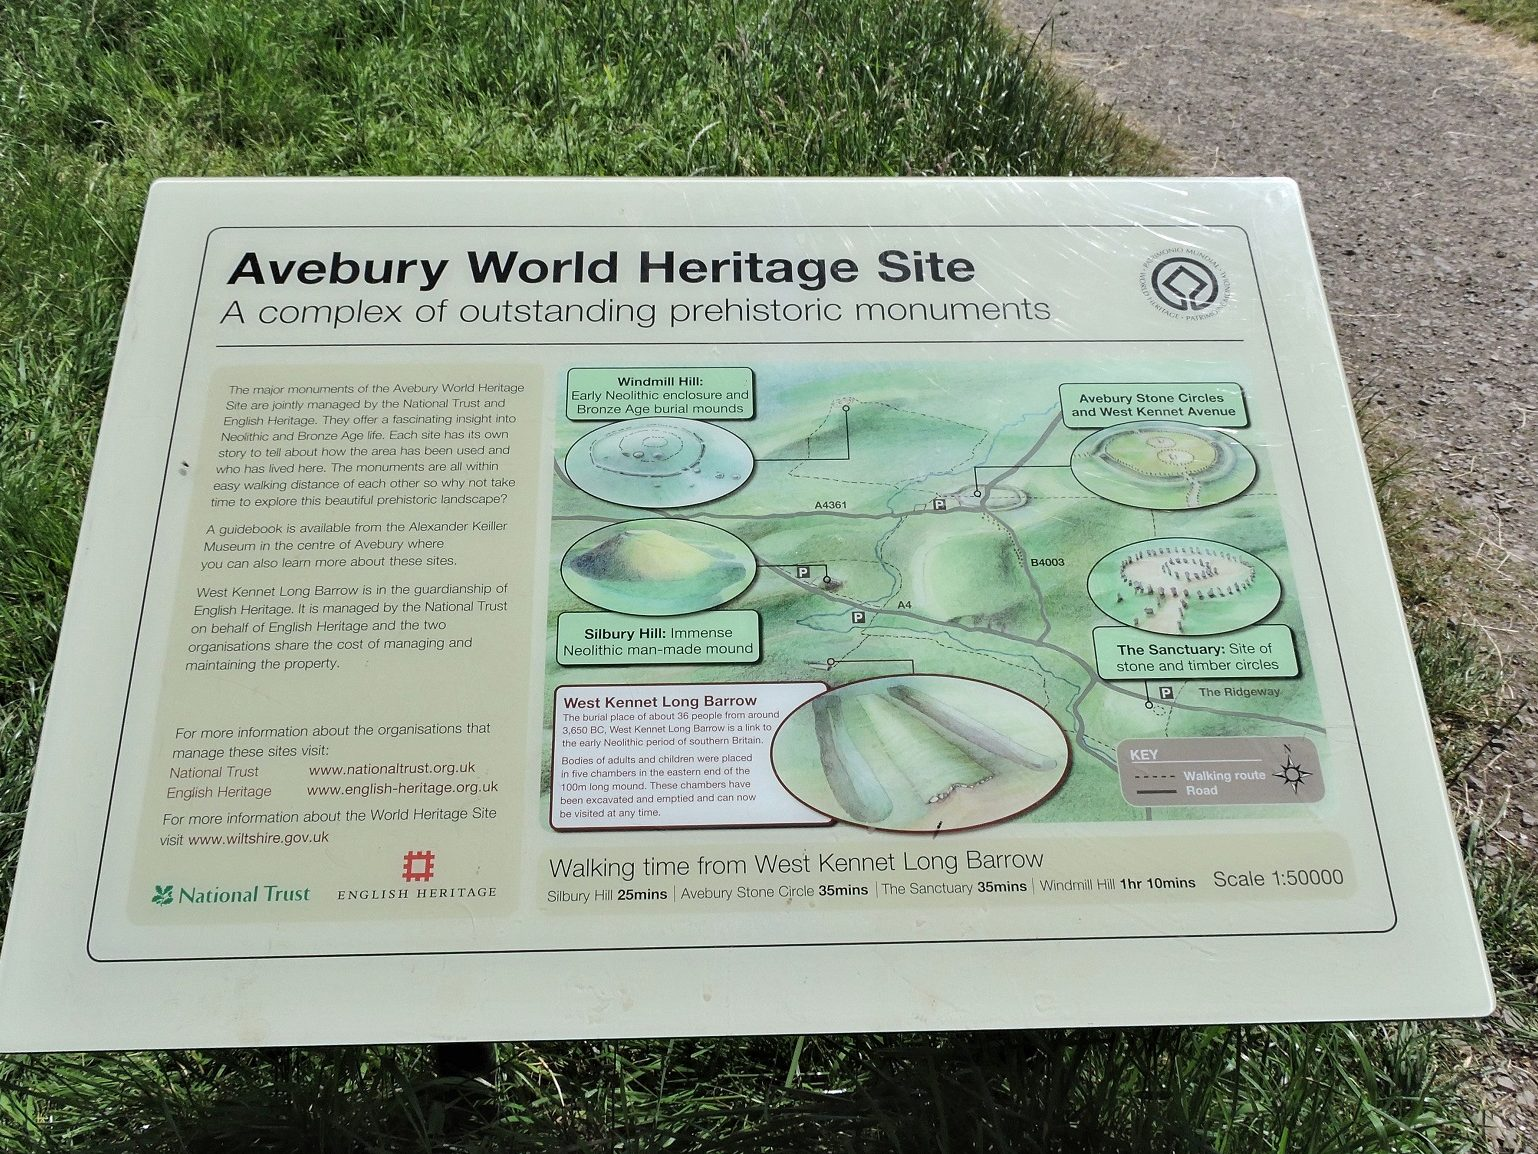 world heritage sign with map of Avebury sites